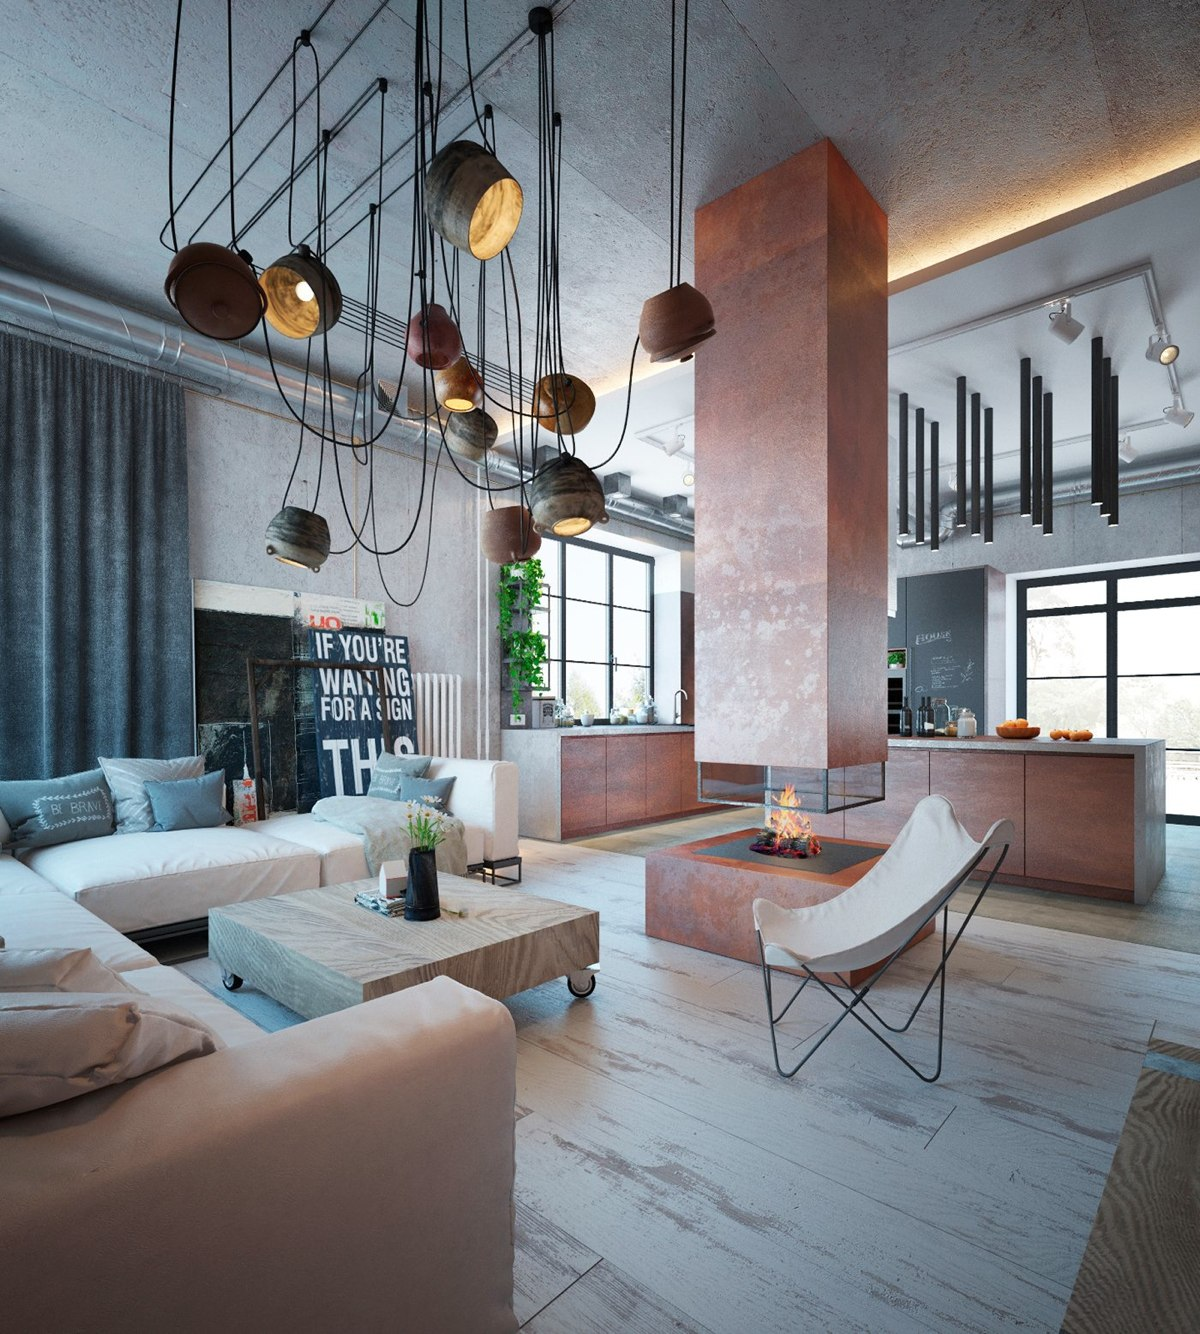 Industrial Interior Design Ideas Part - 16: Like Architecture U0026 Interior Design? Follow Us..